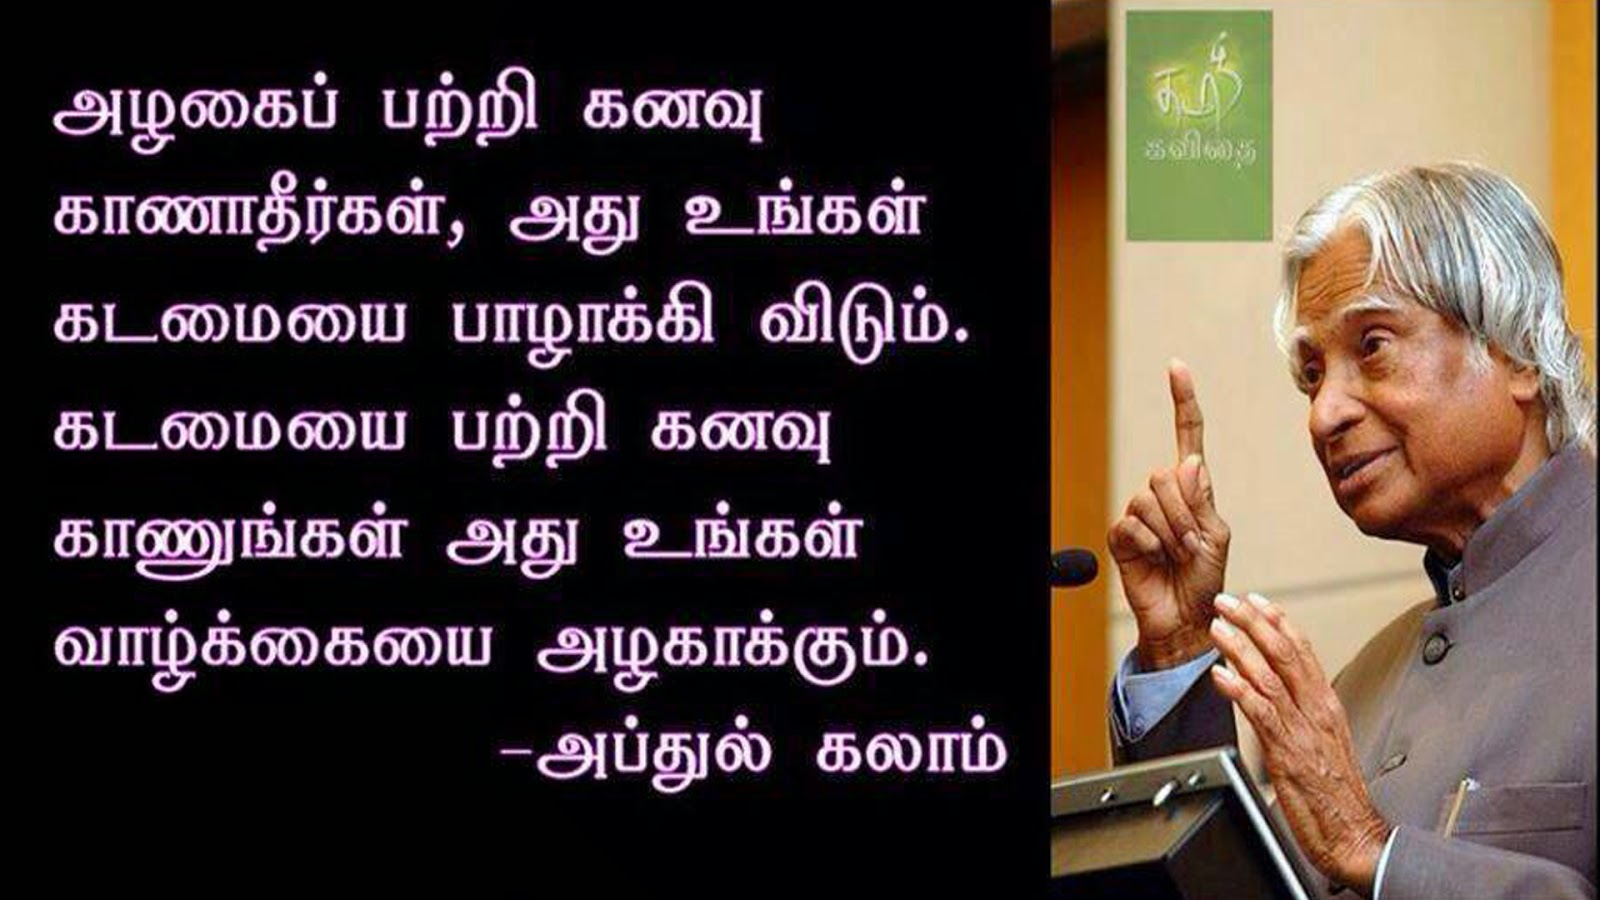 Motivational Hover Me Nice Quotes Wisdom Thoughts tamil